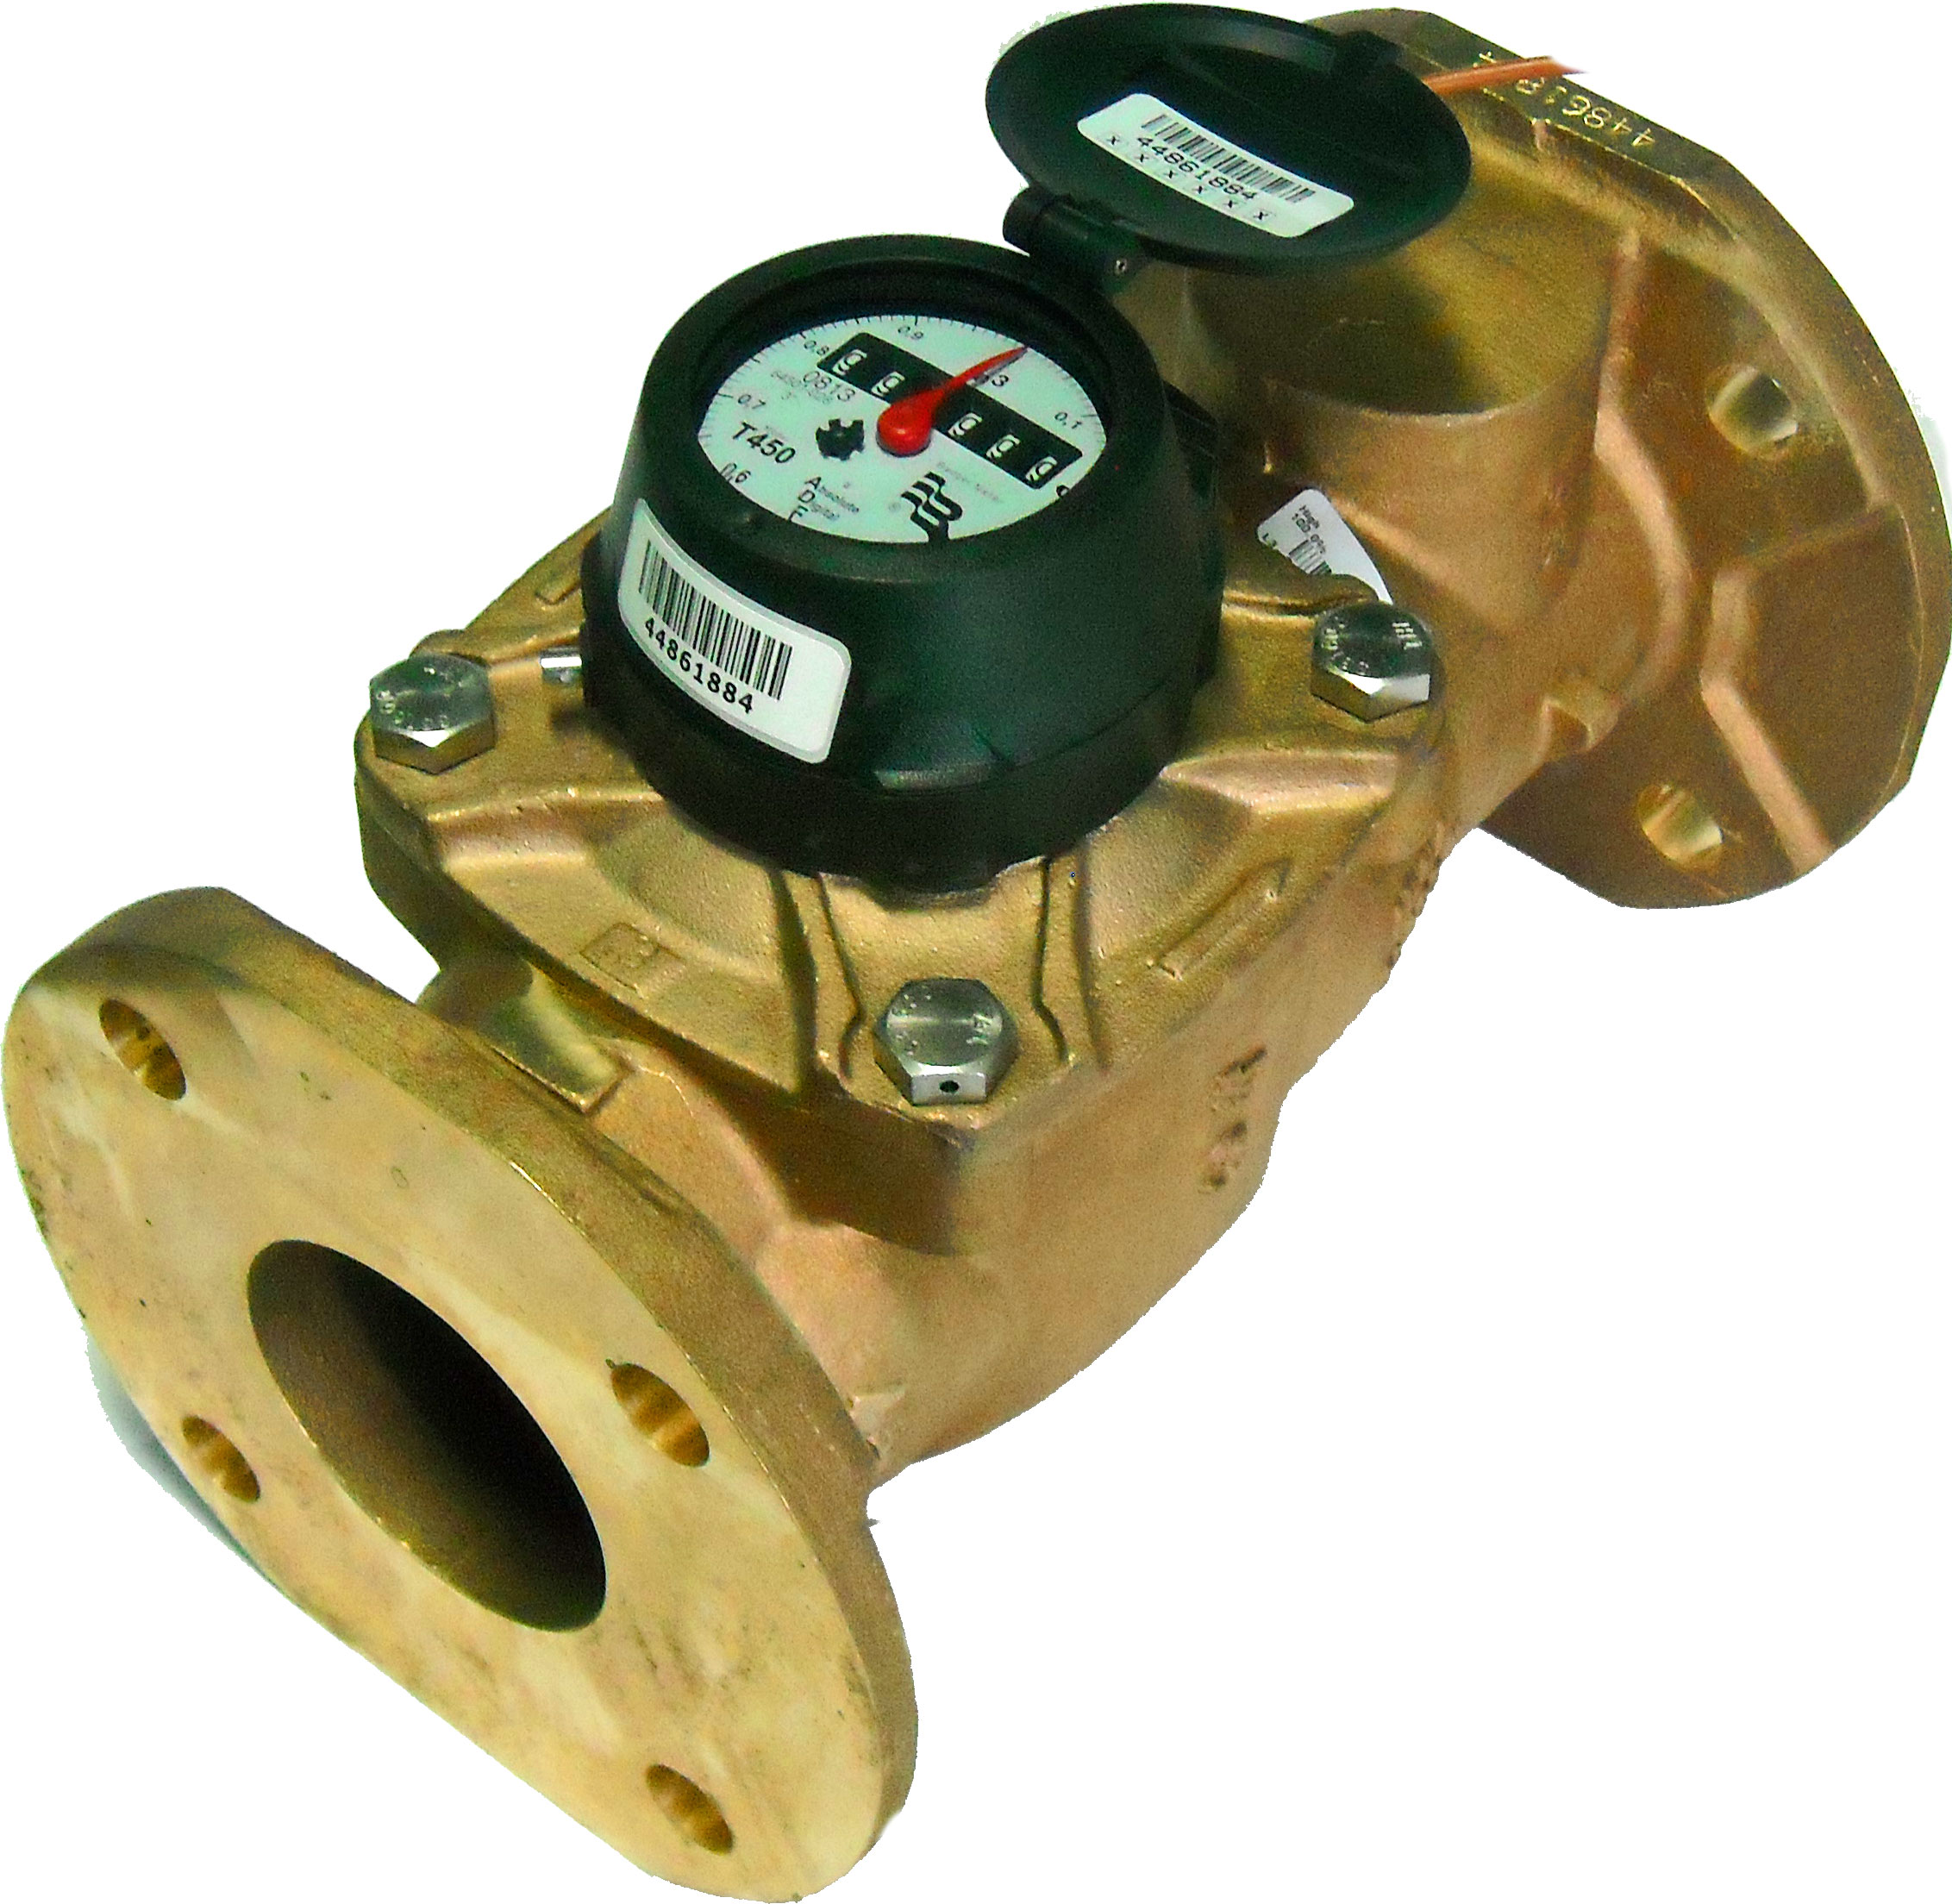 Badger Meter - Model: Turbo Series